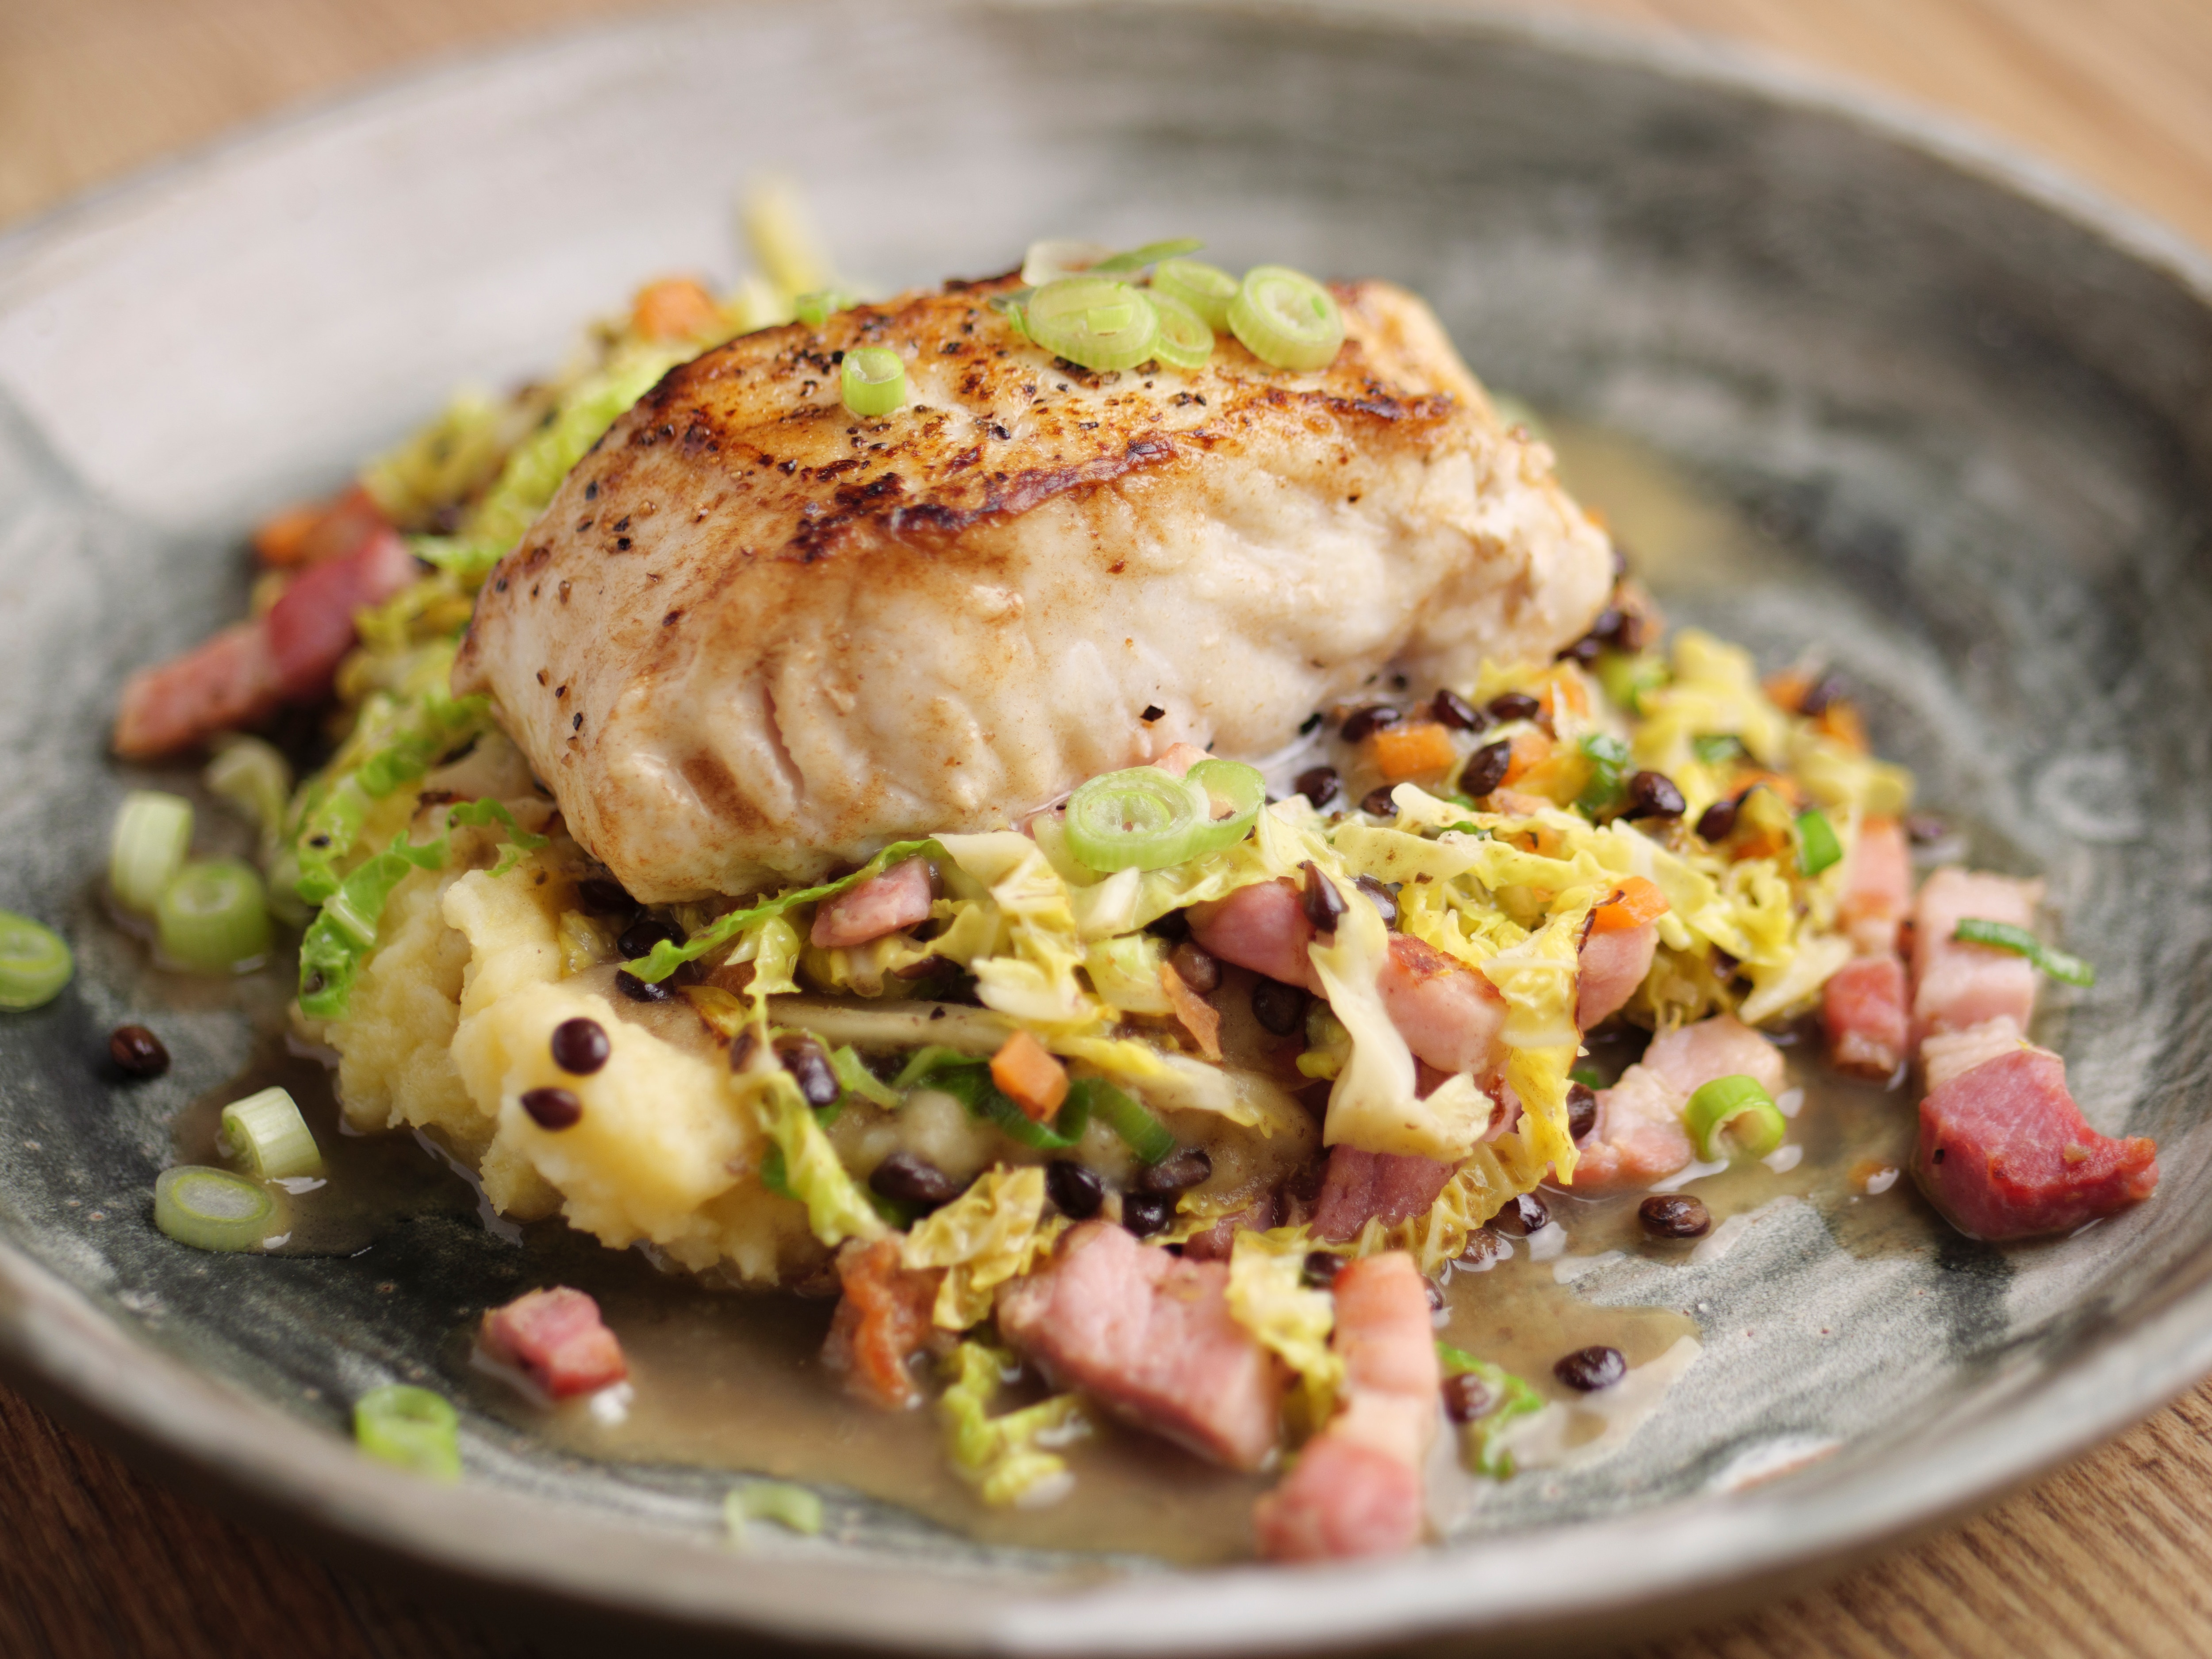 Hake With Mash, Cabbage And Bacon